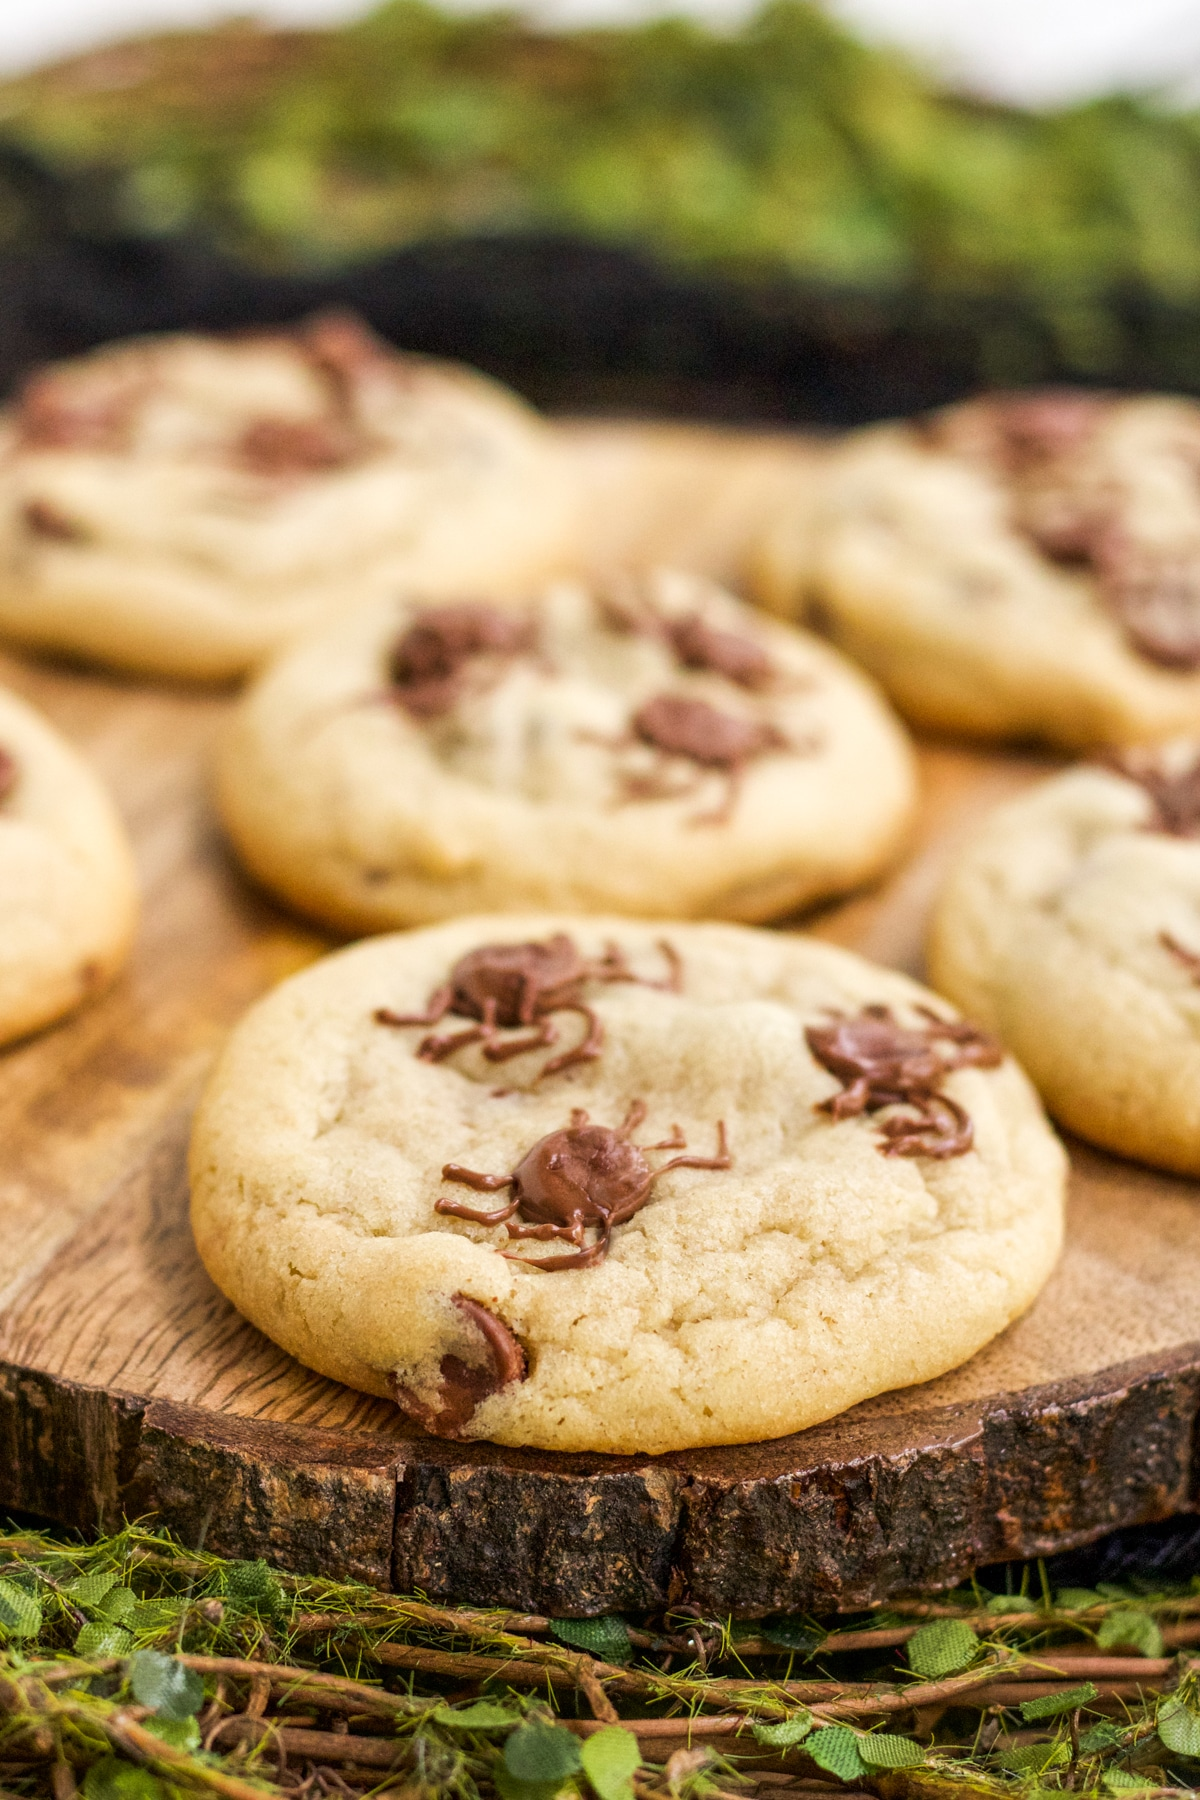 Chocolate Chip Spider Cookies Recipe served on a wooden platter.